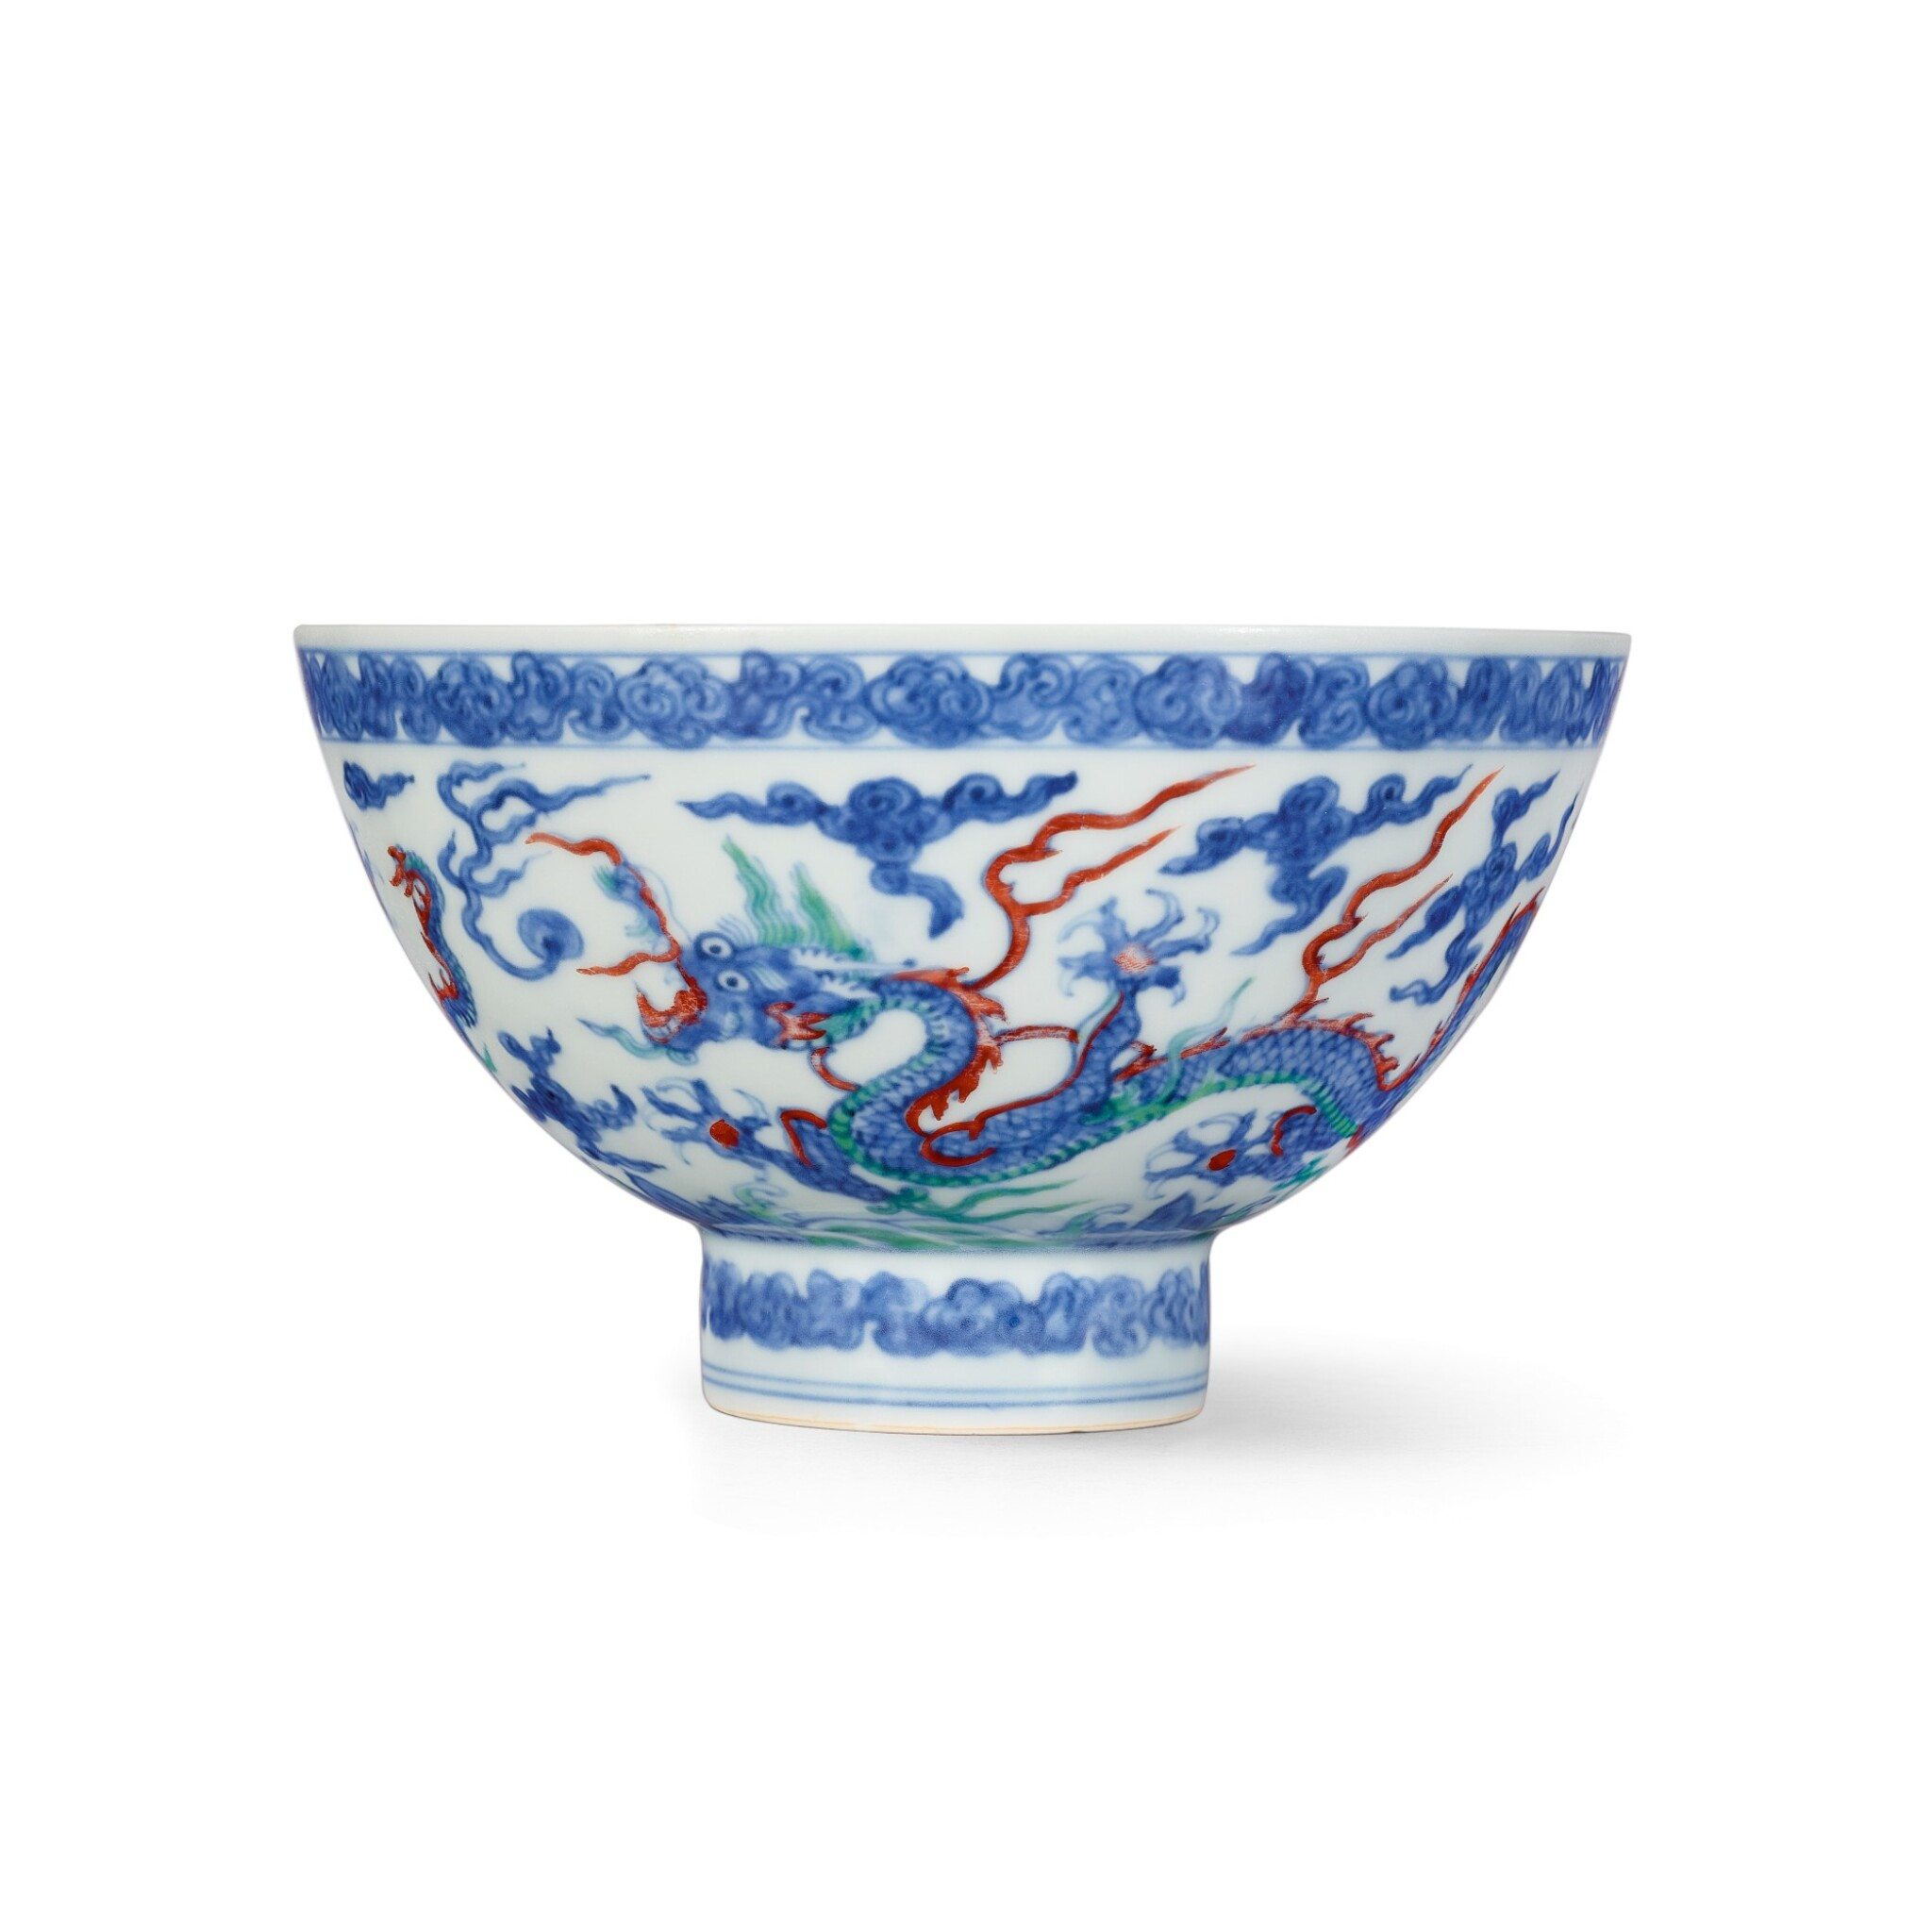 View full screen - View 1 of Lot 3611. An extremely rare doucai and anhua-decorated 'dragon' bowl Mark and period of Zhengde | 明正德 鬪彩內暗花外雲龍紋盌 《正德年製》款.